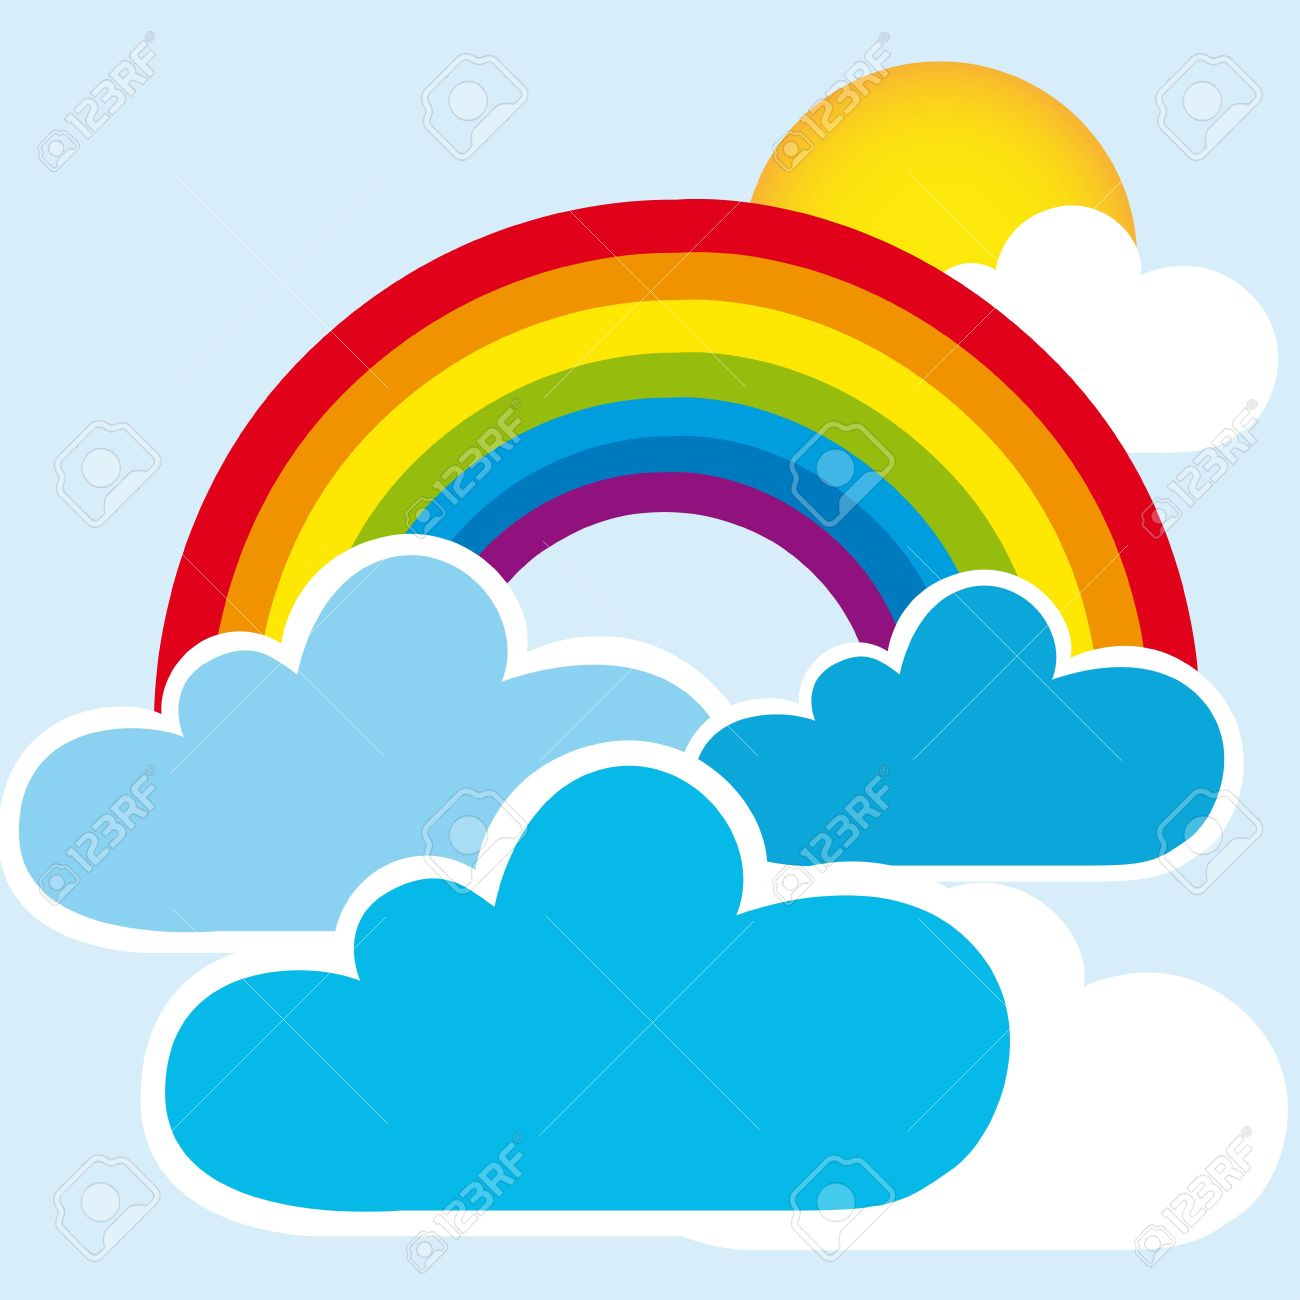 rainbow and clouds with sun, landscape. vector Stock Vector - 11317800